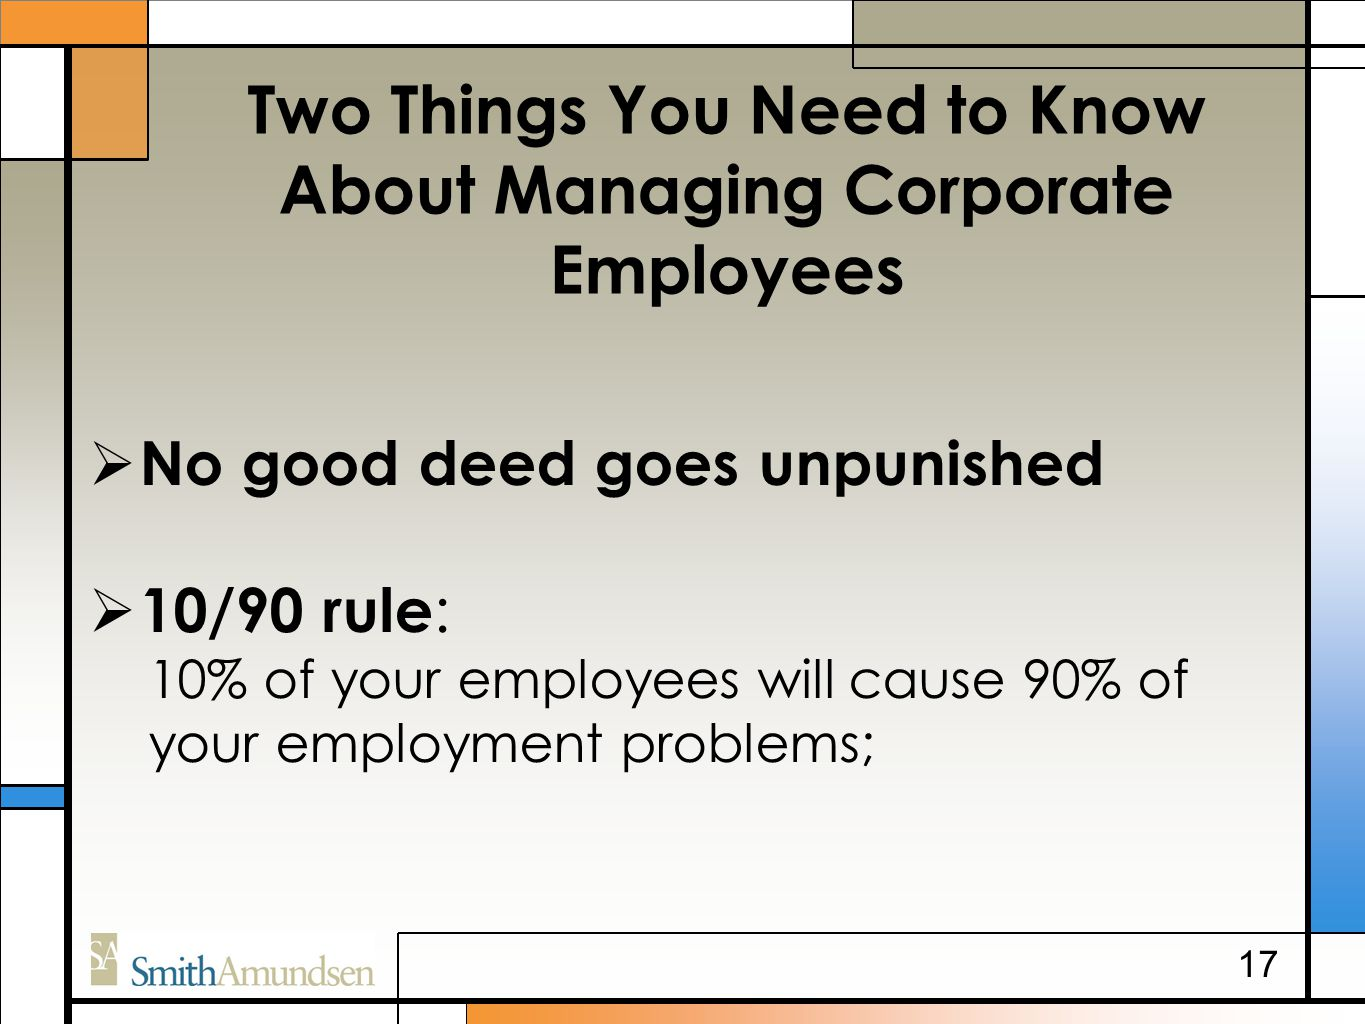 Two Things You Need to Know About Managing Corporate Employees  No good deed goes unpunished  10/90 rule : 10% of your employees will cause 90% of y